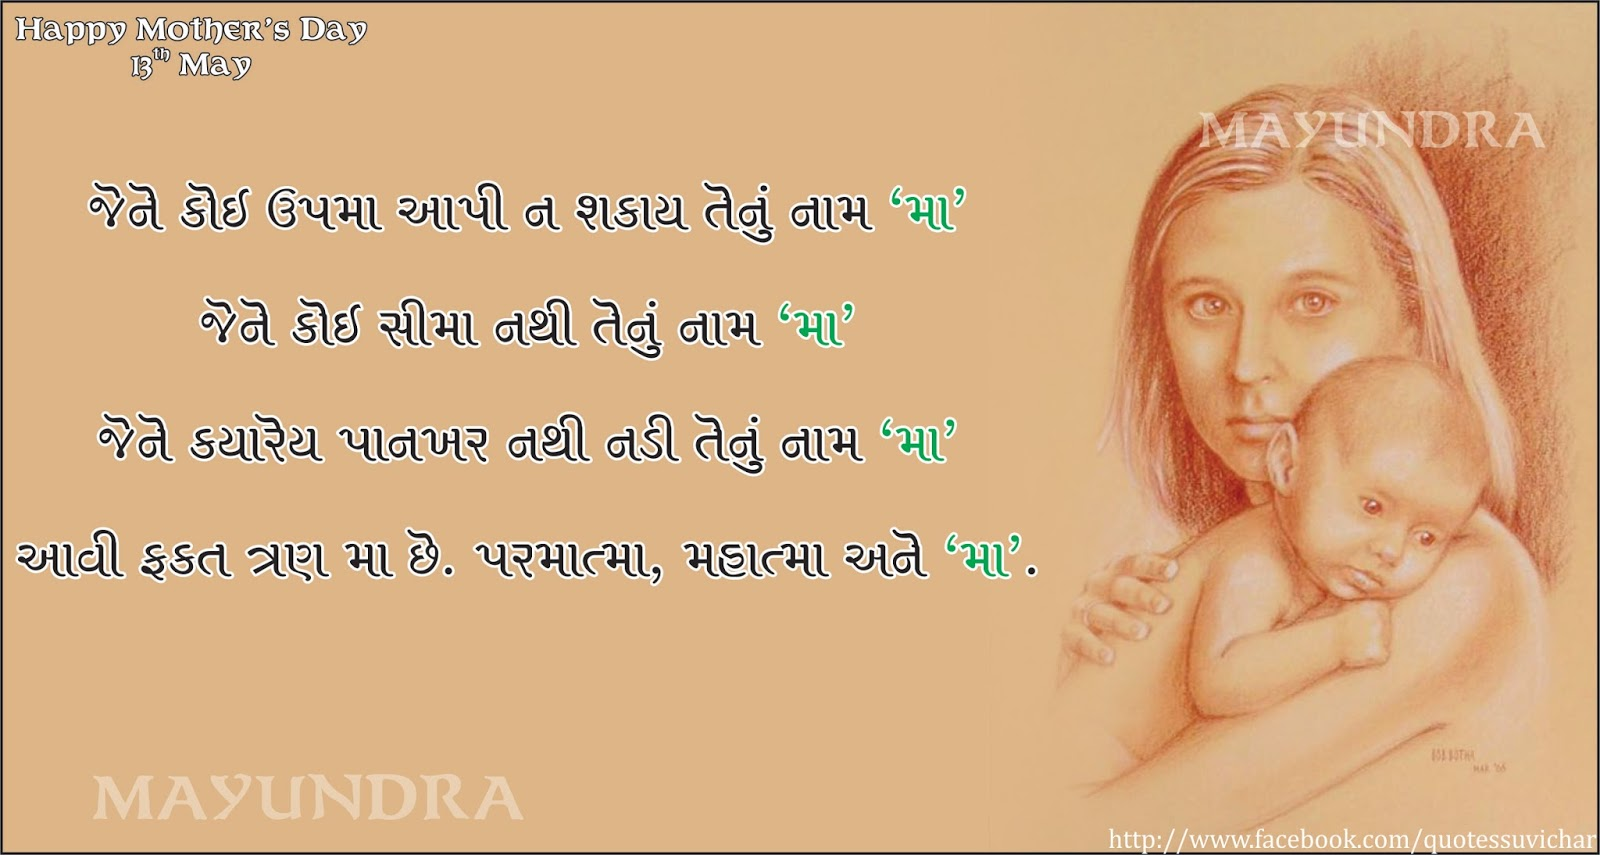 Gujrati Quotes Happy Mothers Day On Maa 1 Quotes India Quotes